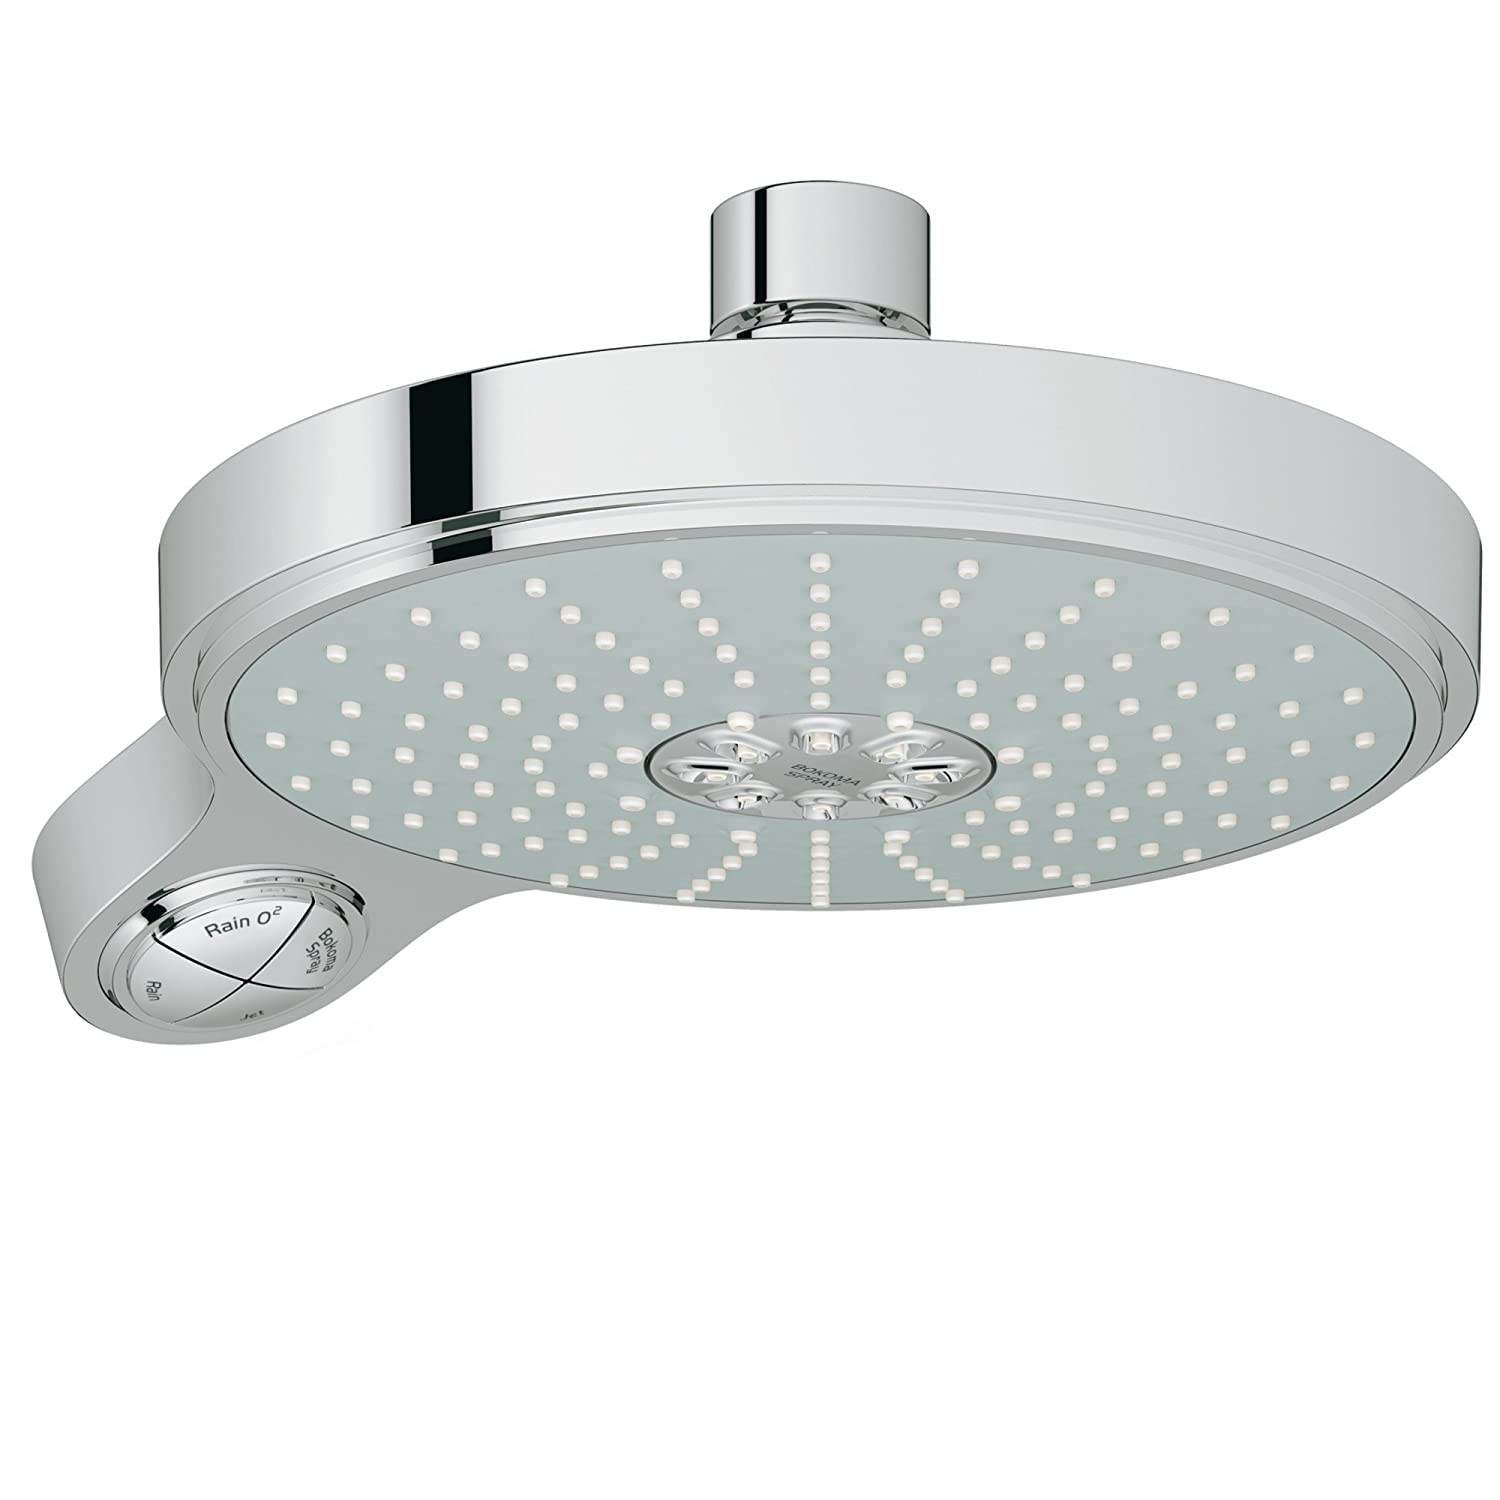 Power and Soul Cosmopolitan 190 Shower Head - 4 Sprays - Fixed ...